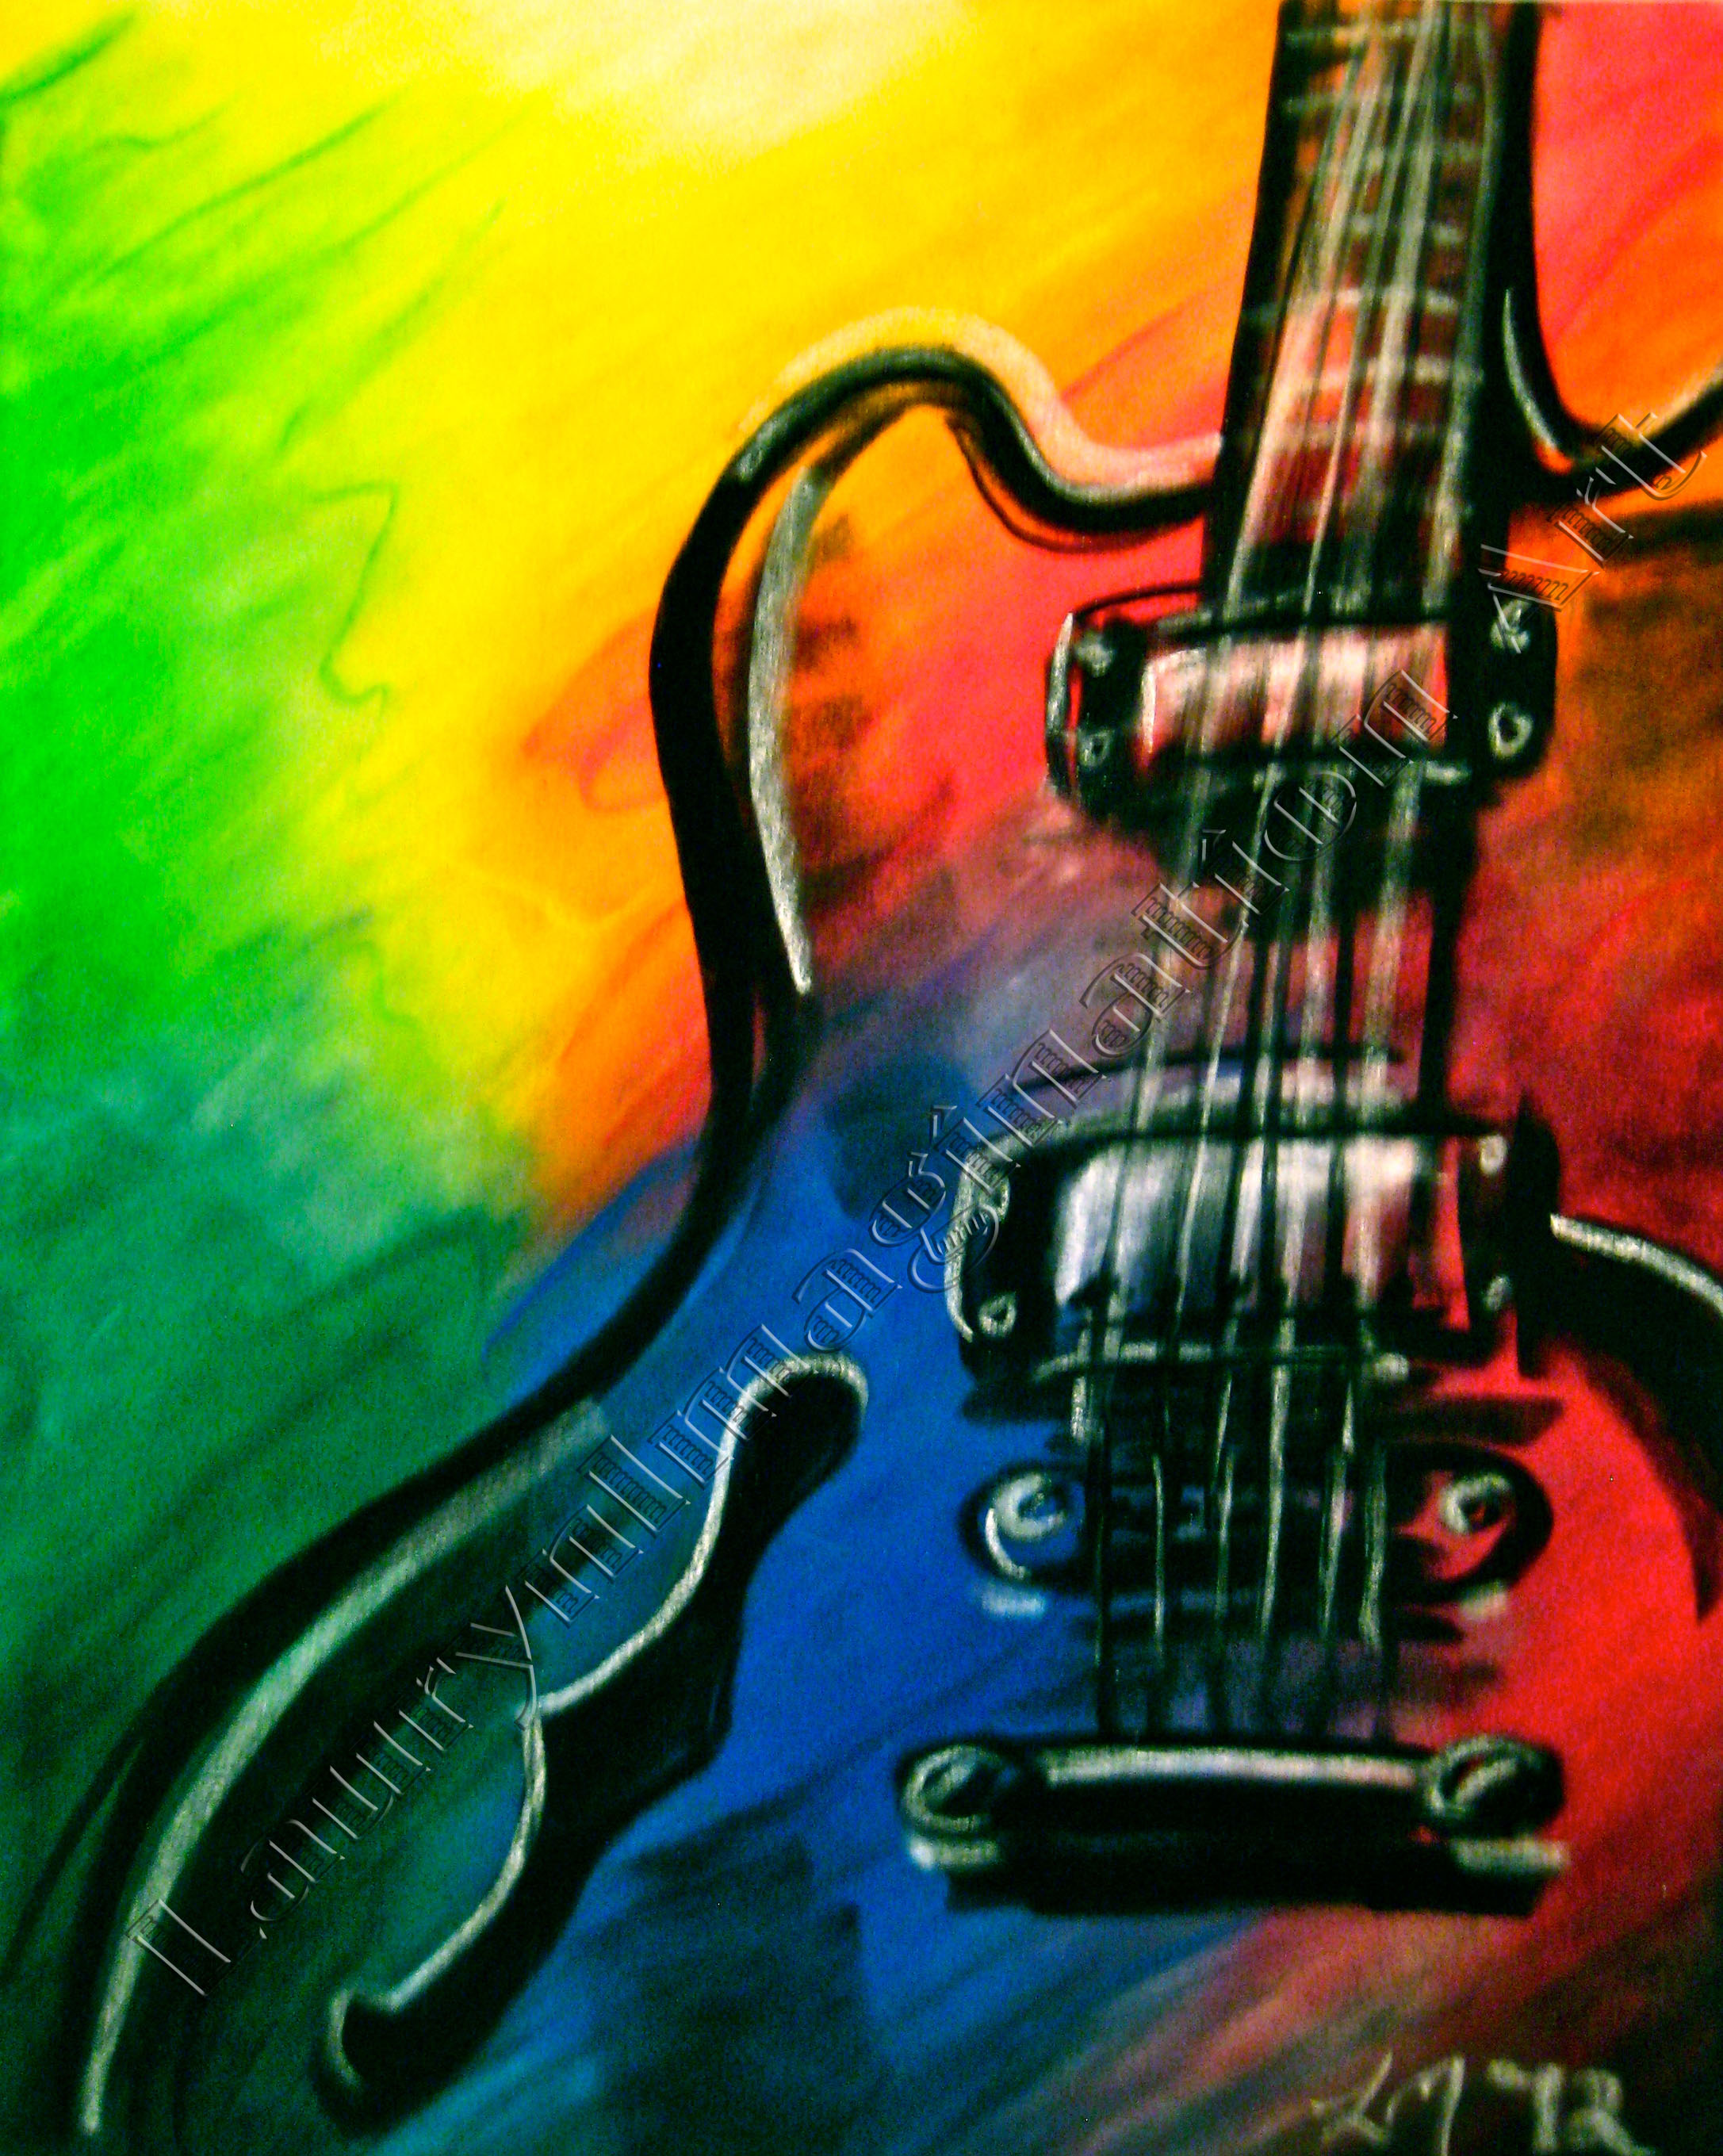 Abstract Music Paintings Done With Oil Pastels On Canvas